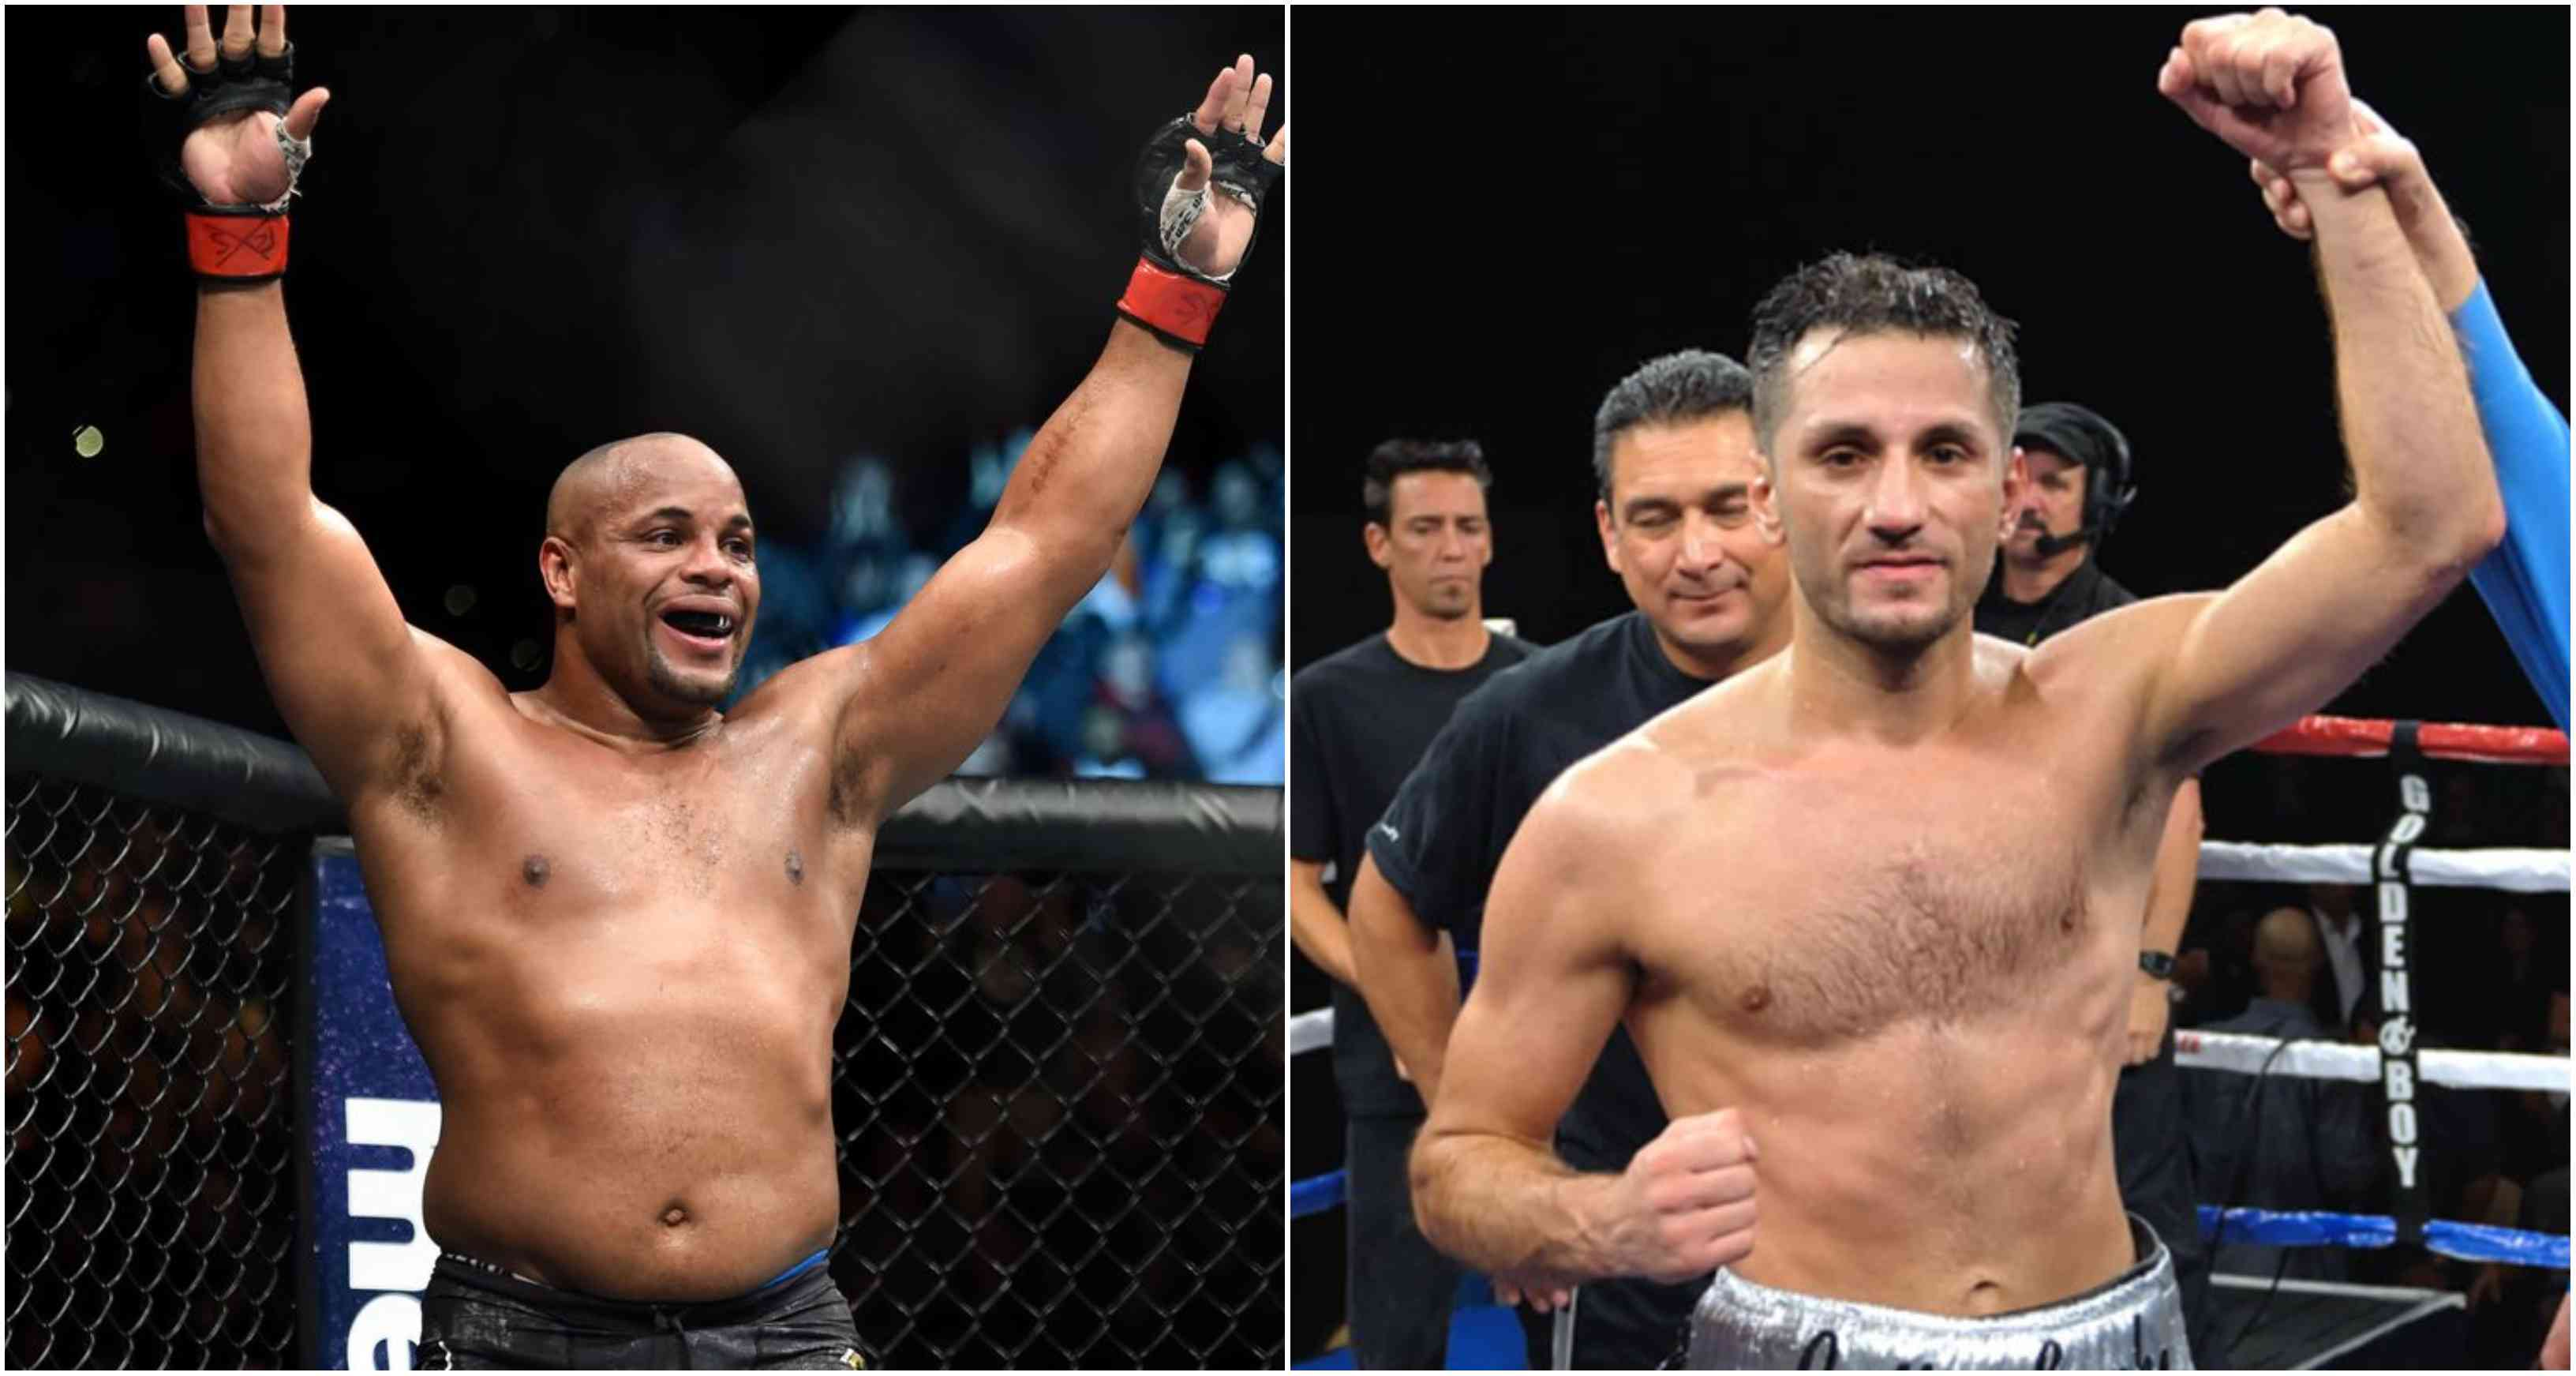 Daniel Cormier and boxer Sergio Mora get into a twitter beef! - Cormier